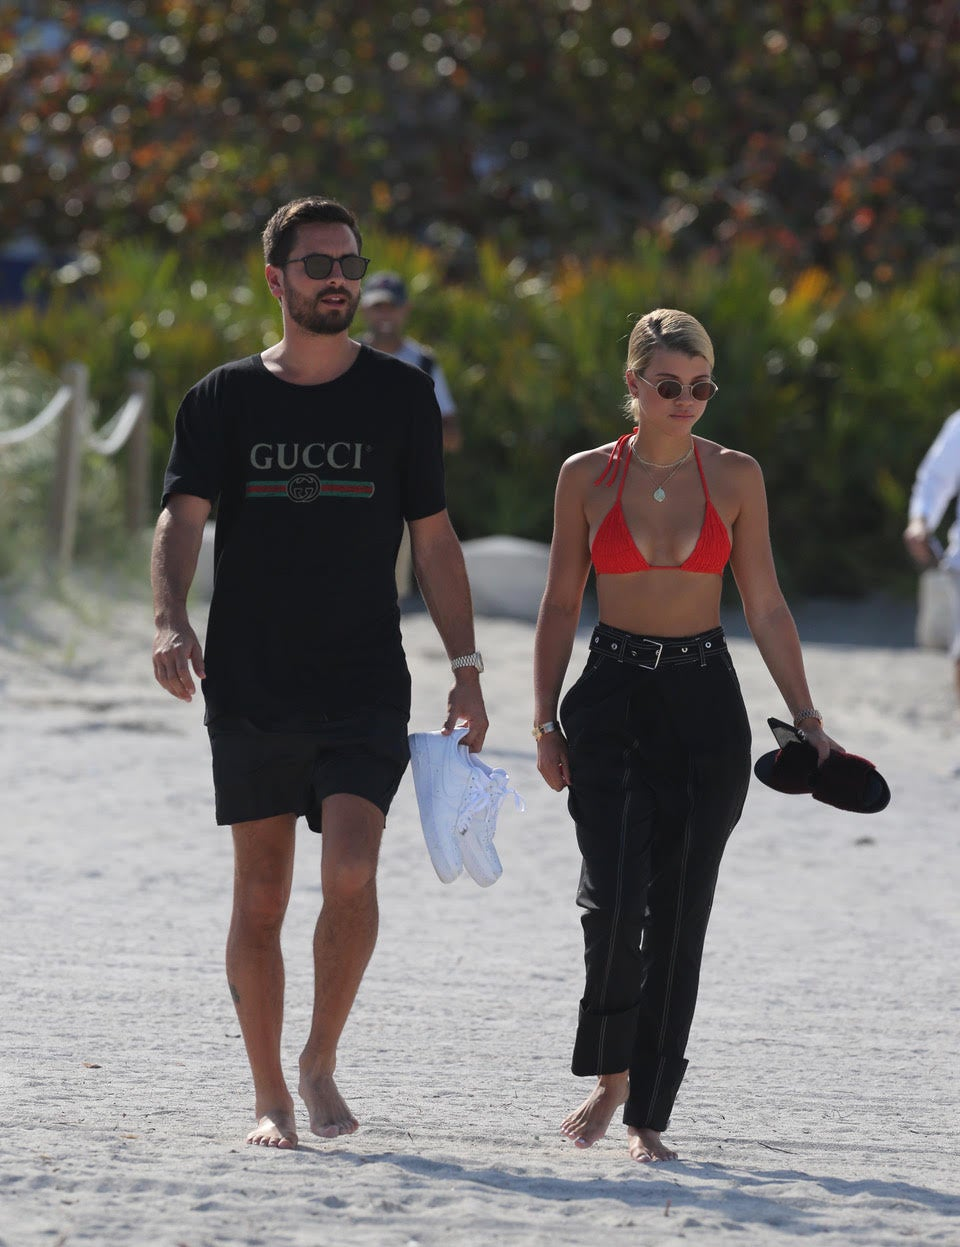 Scott Disick And Sofia Richie Are Instagram Official After Confirming Their Relationship